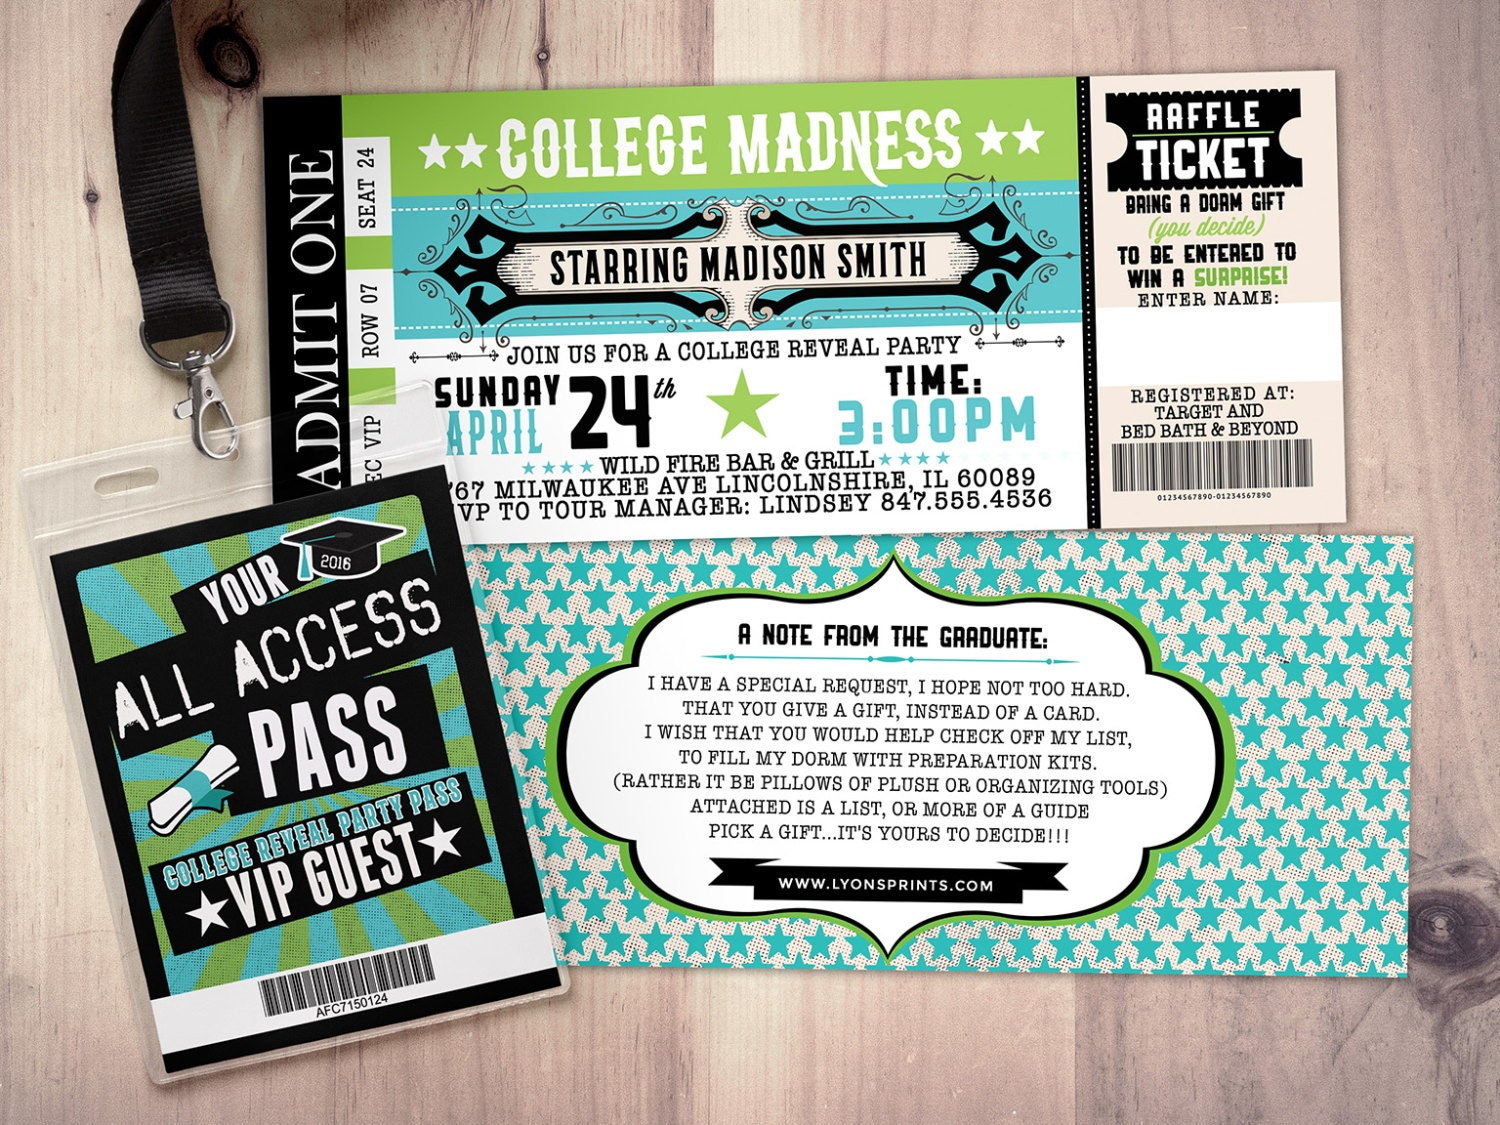 College Reveal Party, Concert Ticket, Graduation Party Invitation, Rockstar  Birthday Invitation, VIP Pass, Ticket Invitation, Rock Star To Concert Ticket Invitations Template